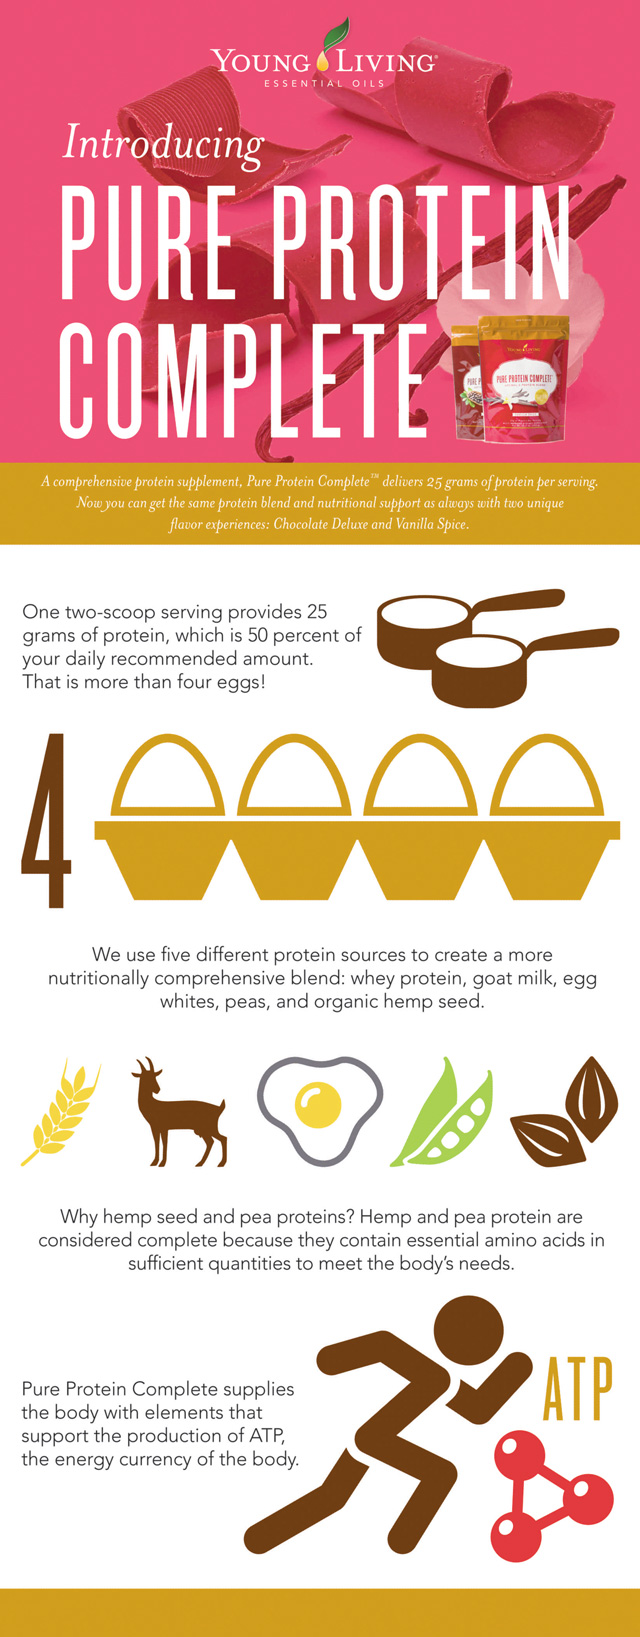 Pure Protein Complete Infographic